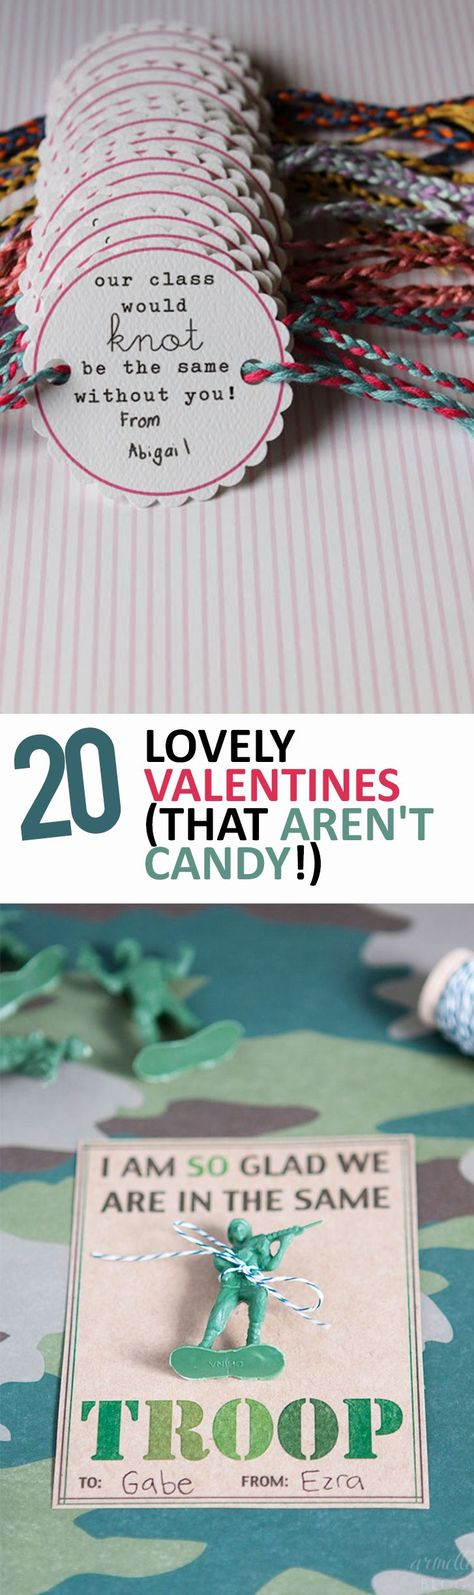 20 Lovely Valentines (That Aren't Candy!) - Sunlit Spaces | DIY Home Decor, Holiday, and More